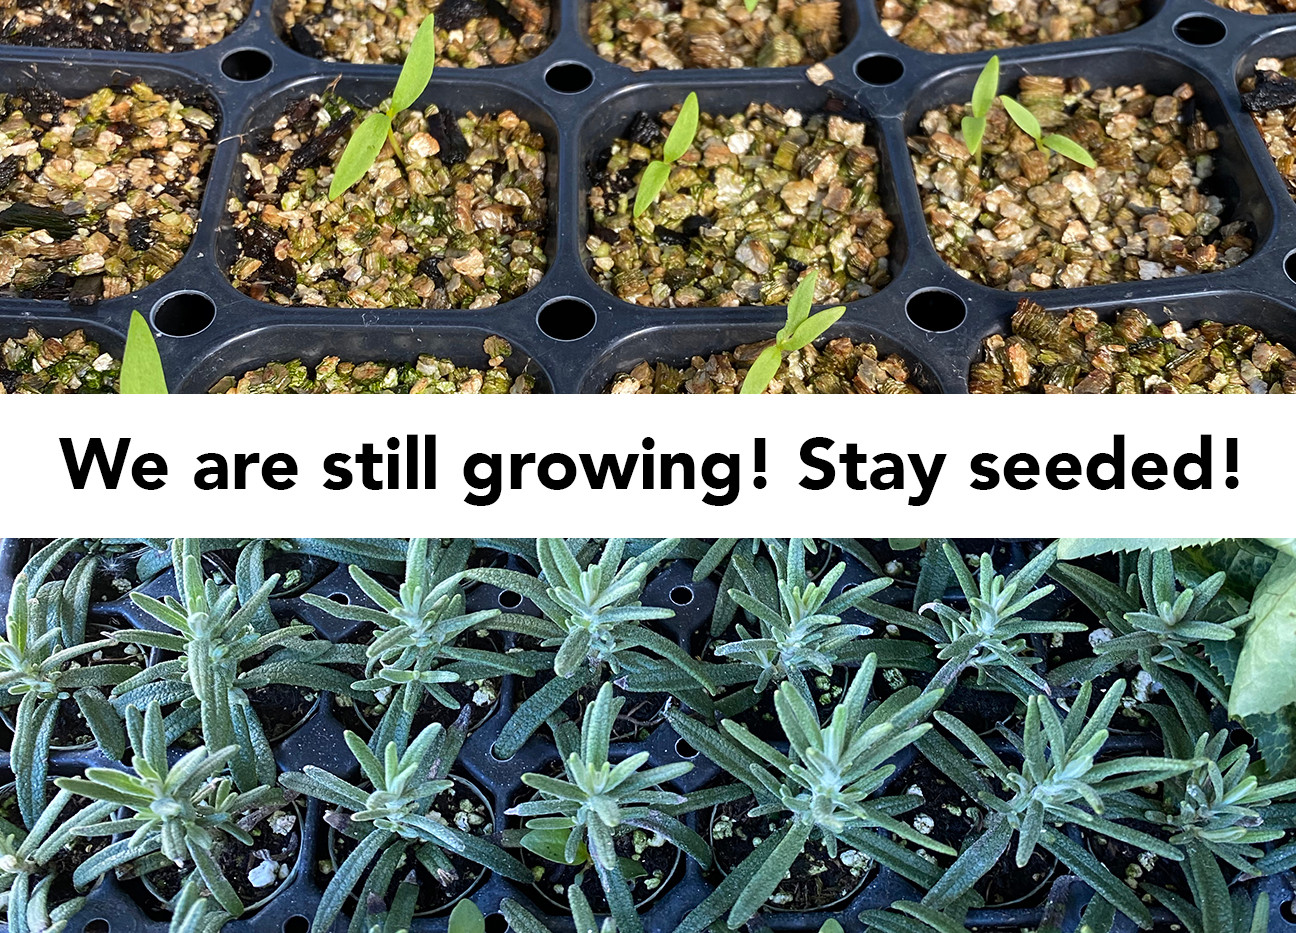 Stay seeded! we are still growing!.jpg